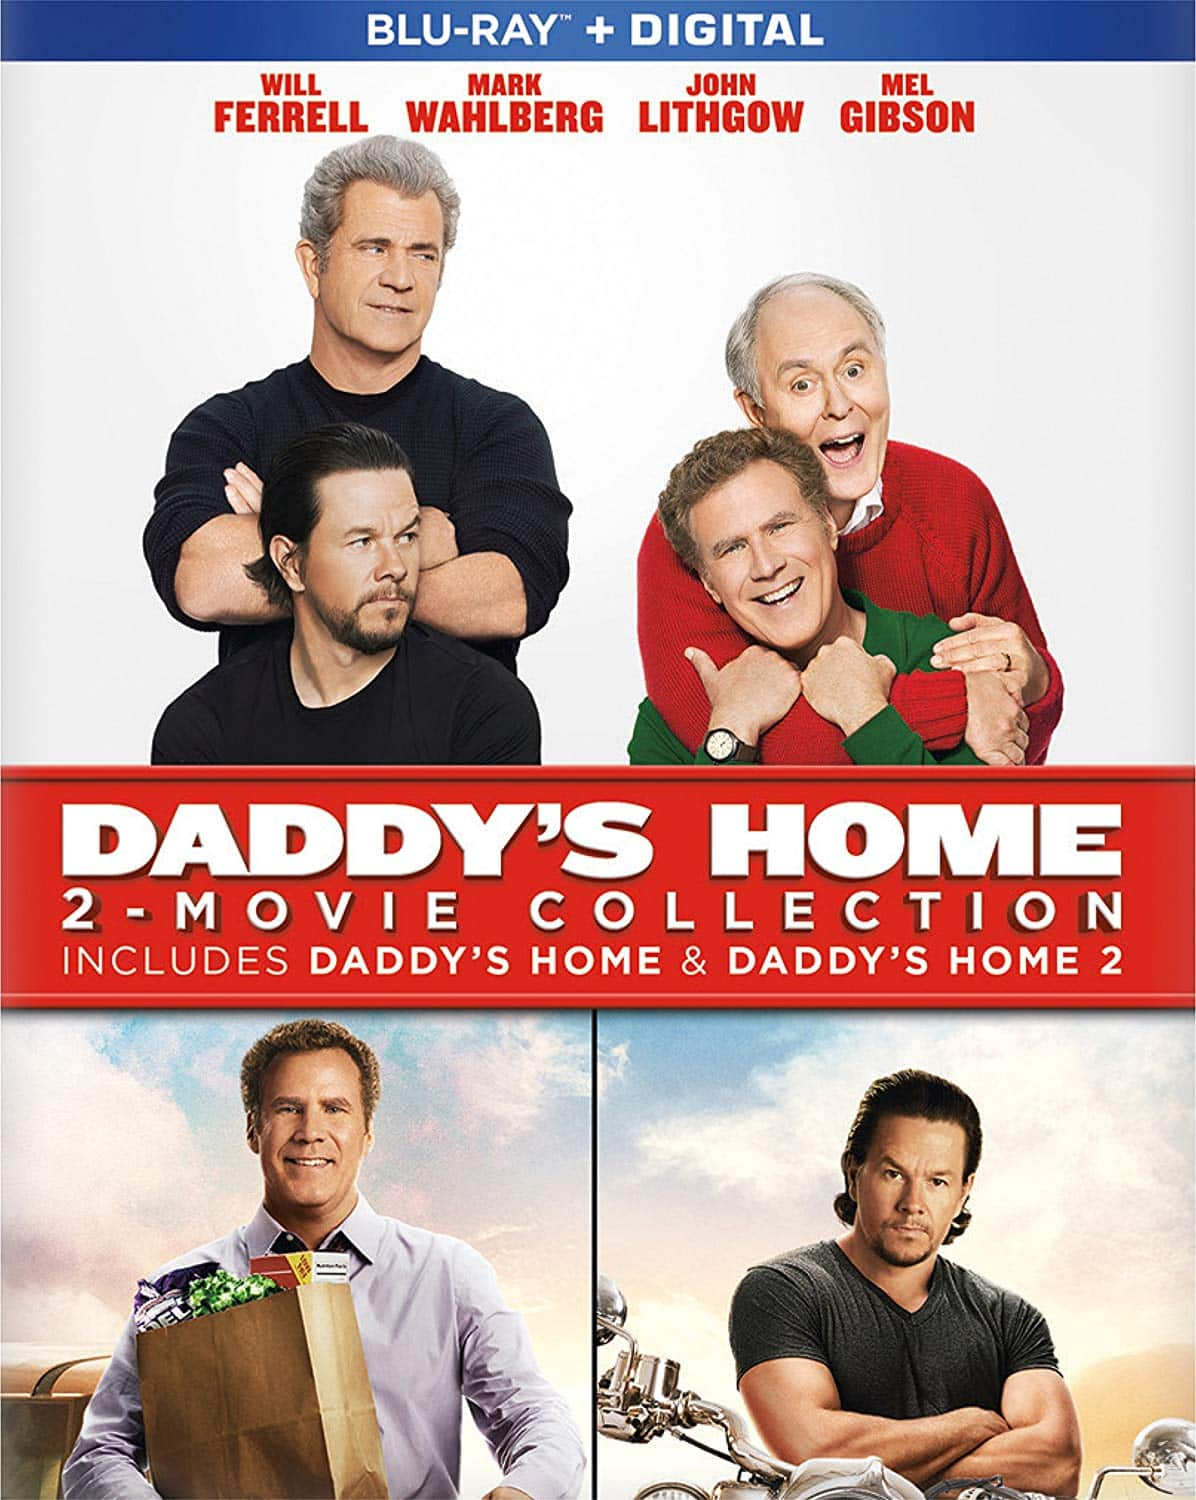 Daddy's Home 2-Movie Collection (Blu-ray + Digital) $7.99 @ Amazon & Best Buy